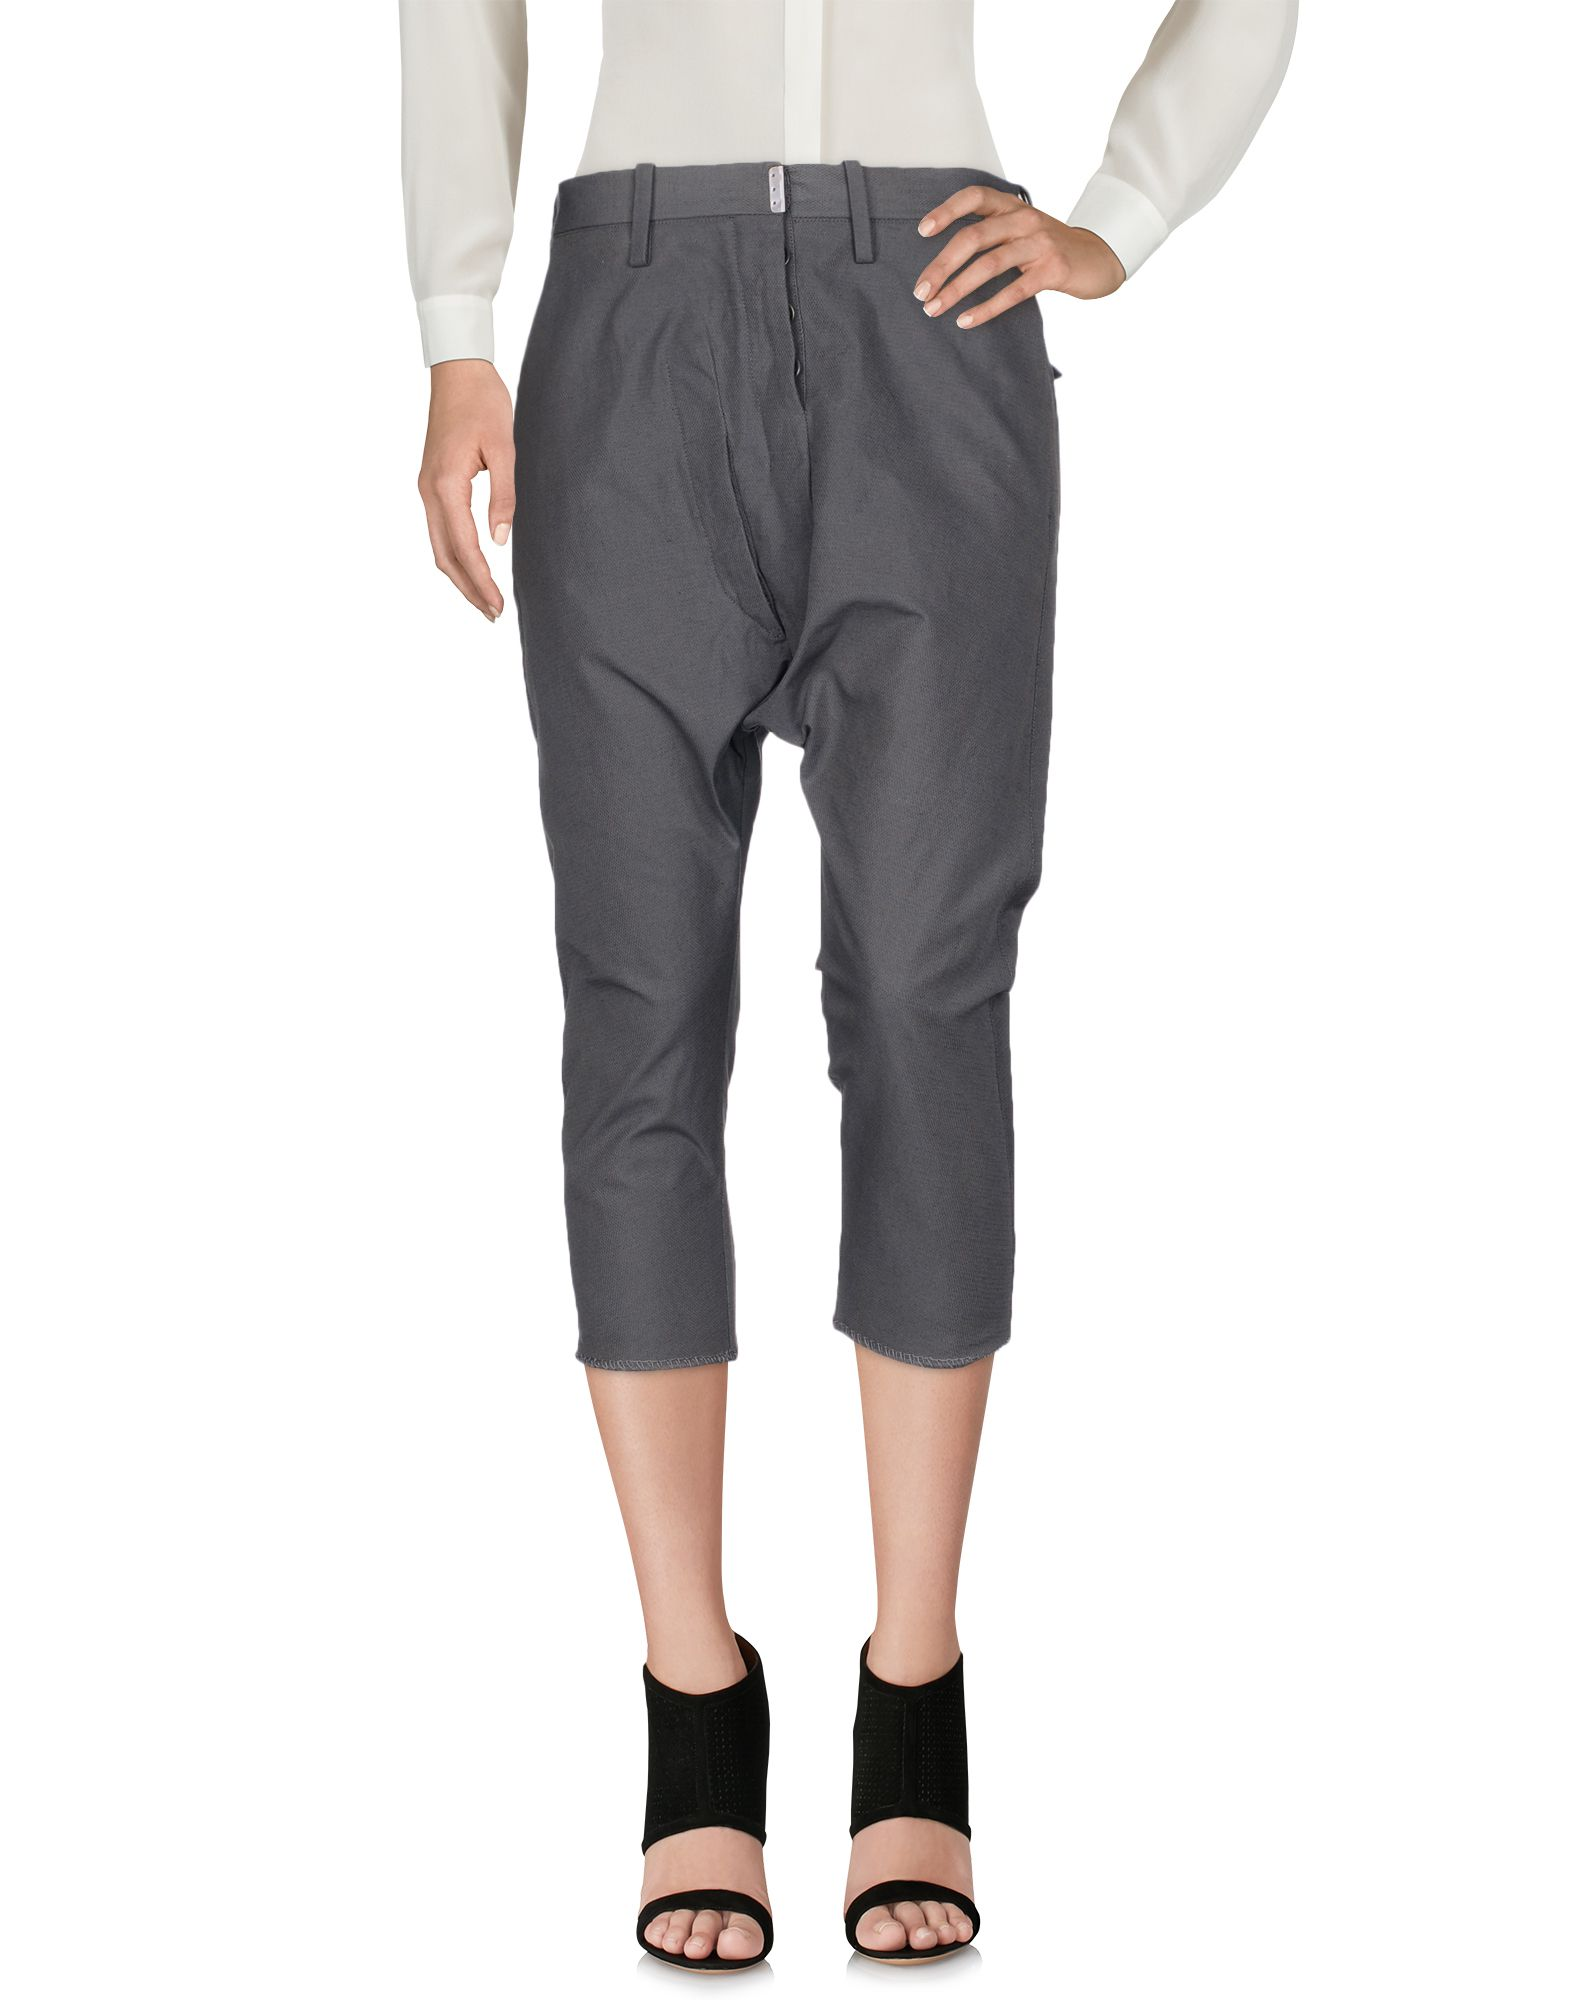 CAROL CHRISTIAN POELL Cropped Pants & Culottes in Lead